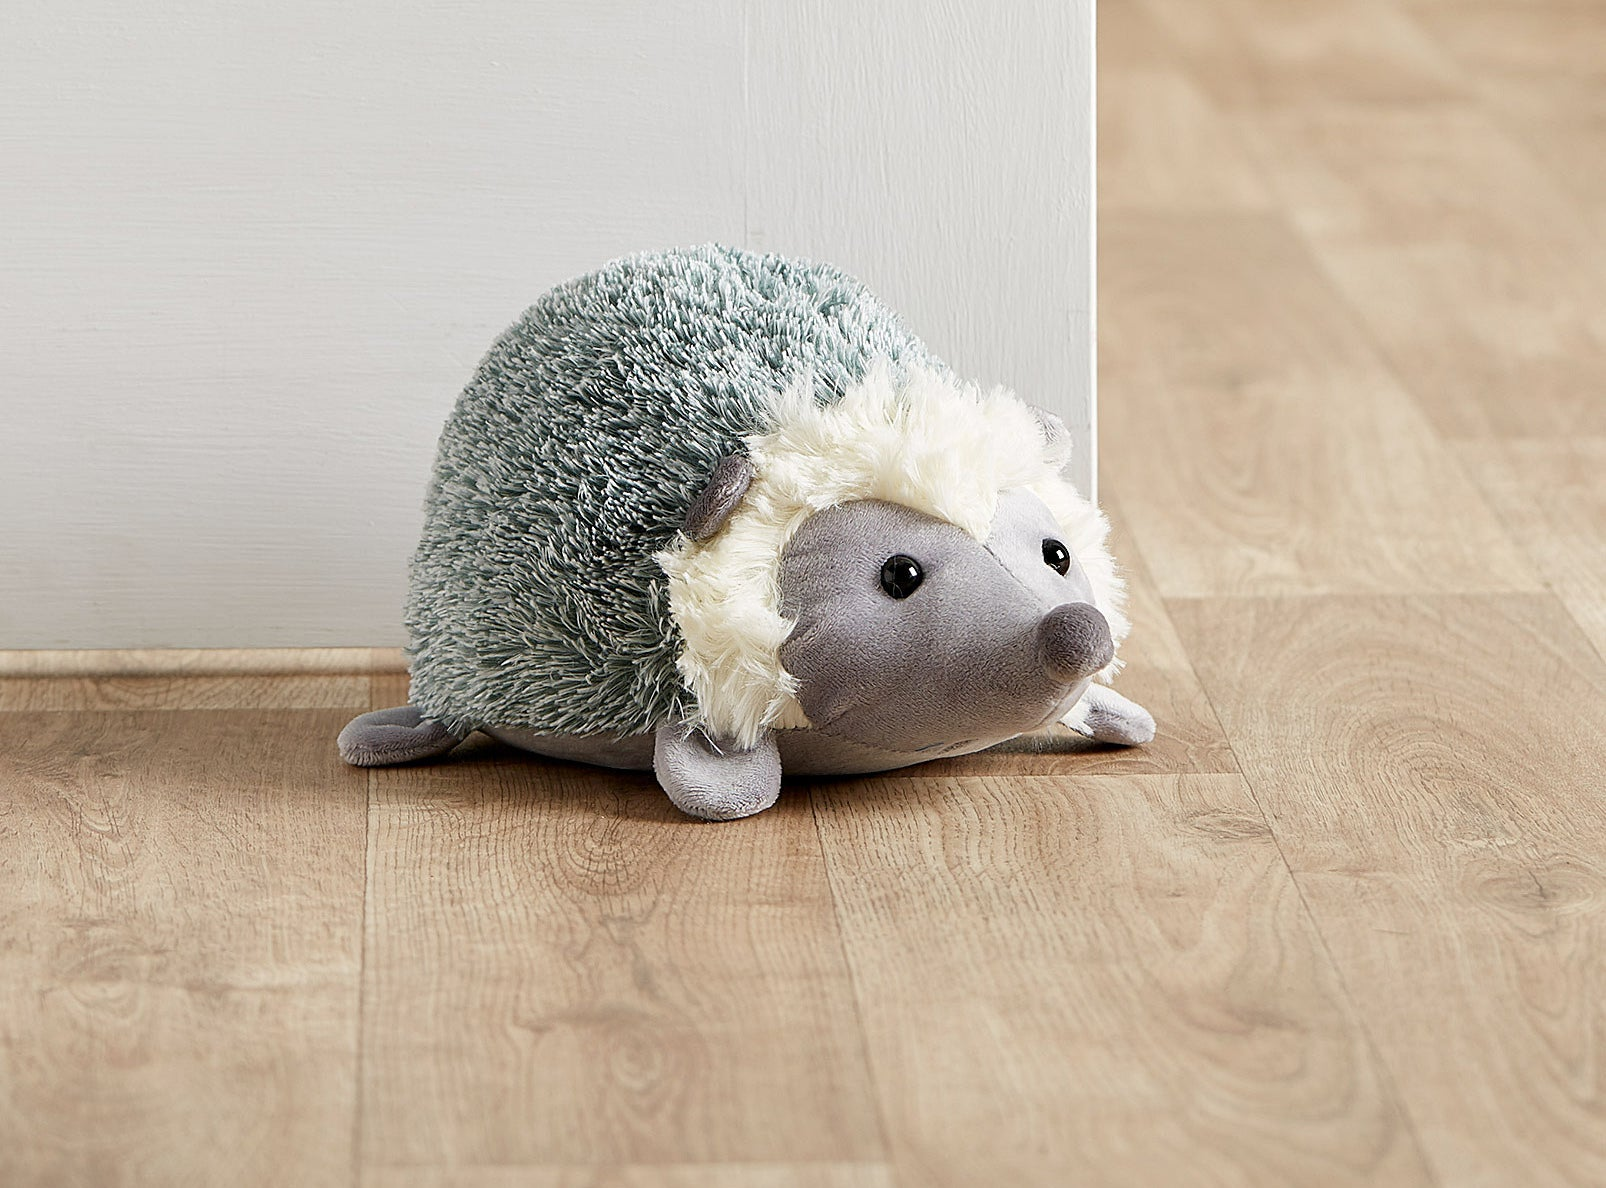 A hedgehog holds open a door